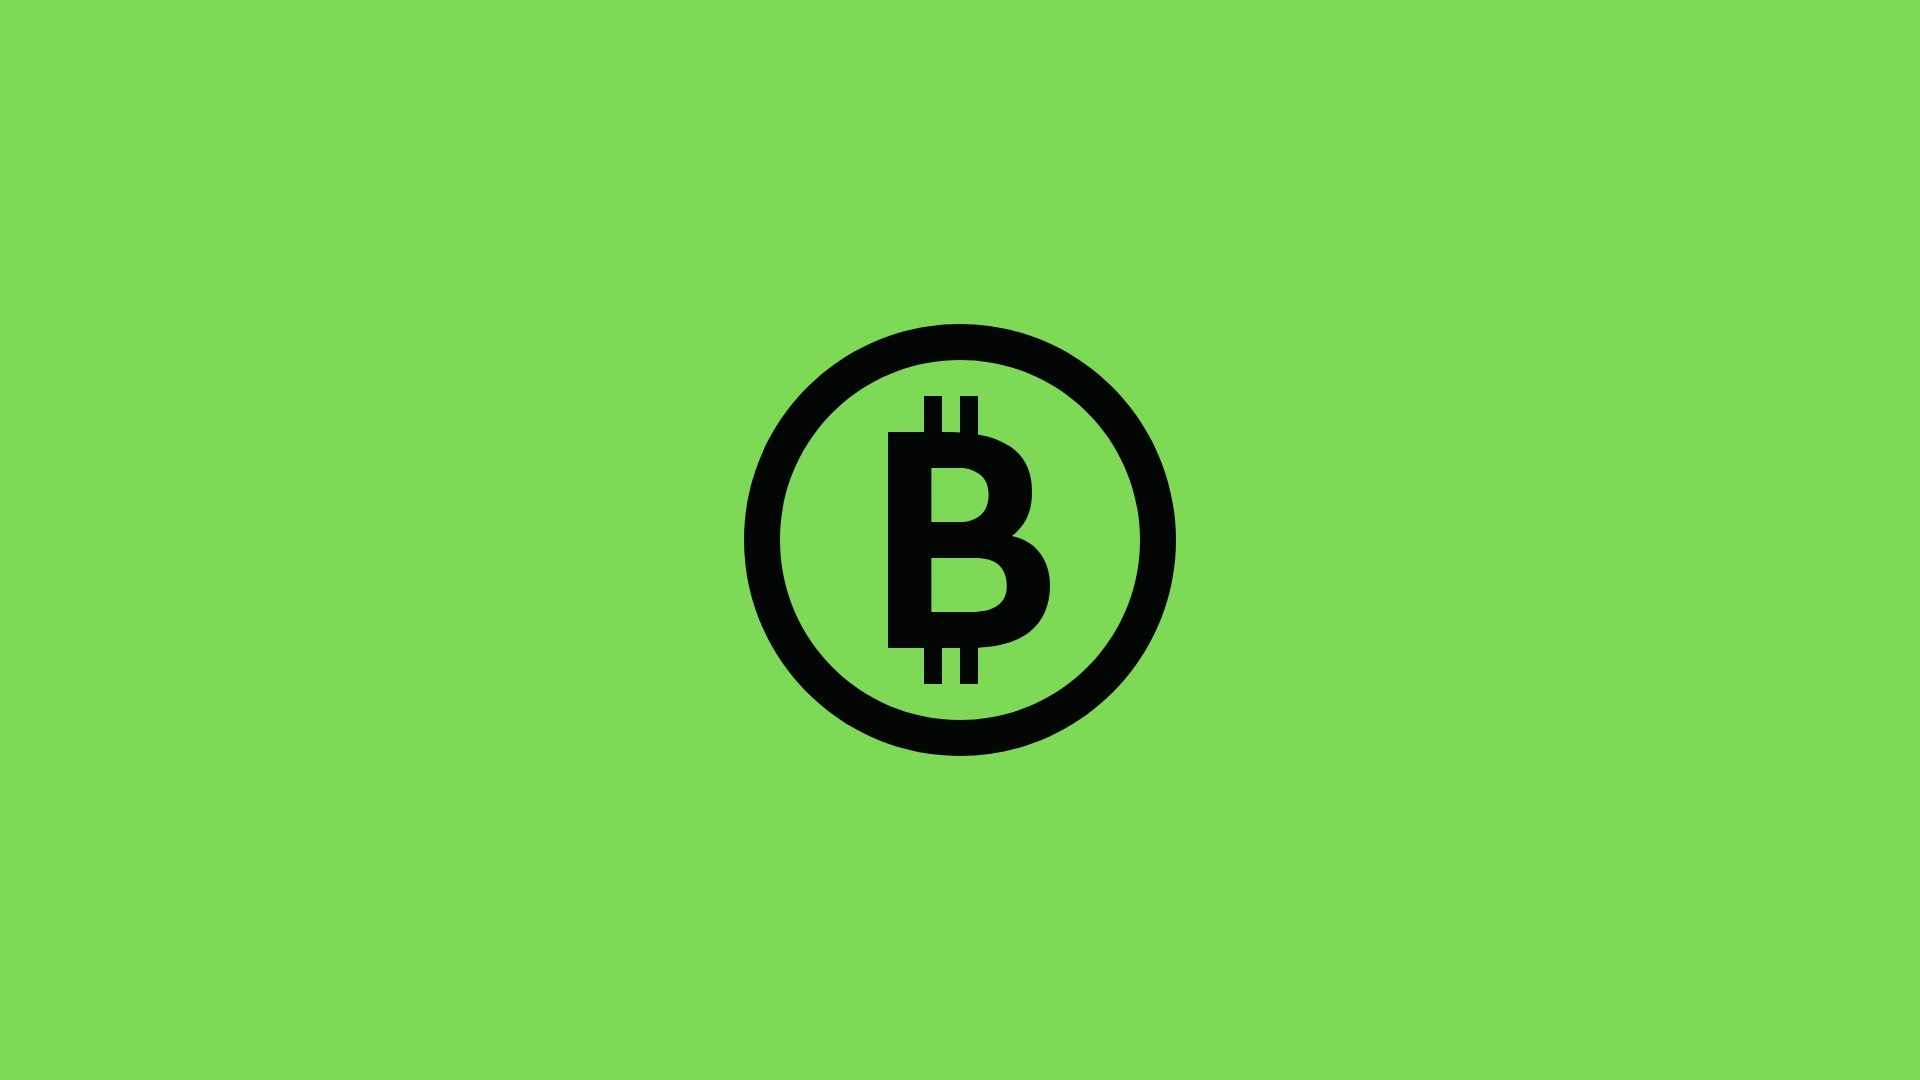 Bitcoin cryptocurrency price today bitcoin stock price